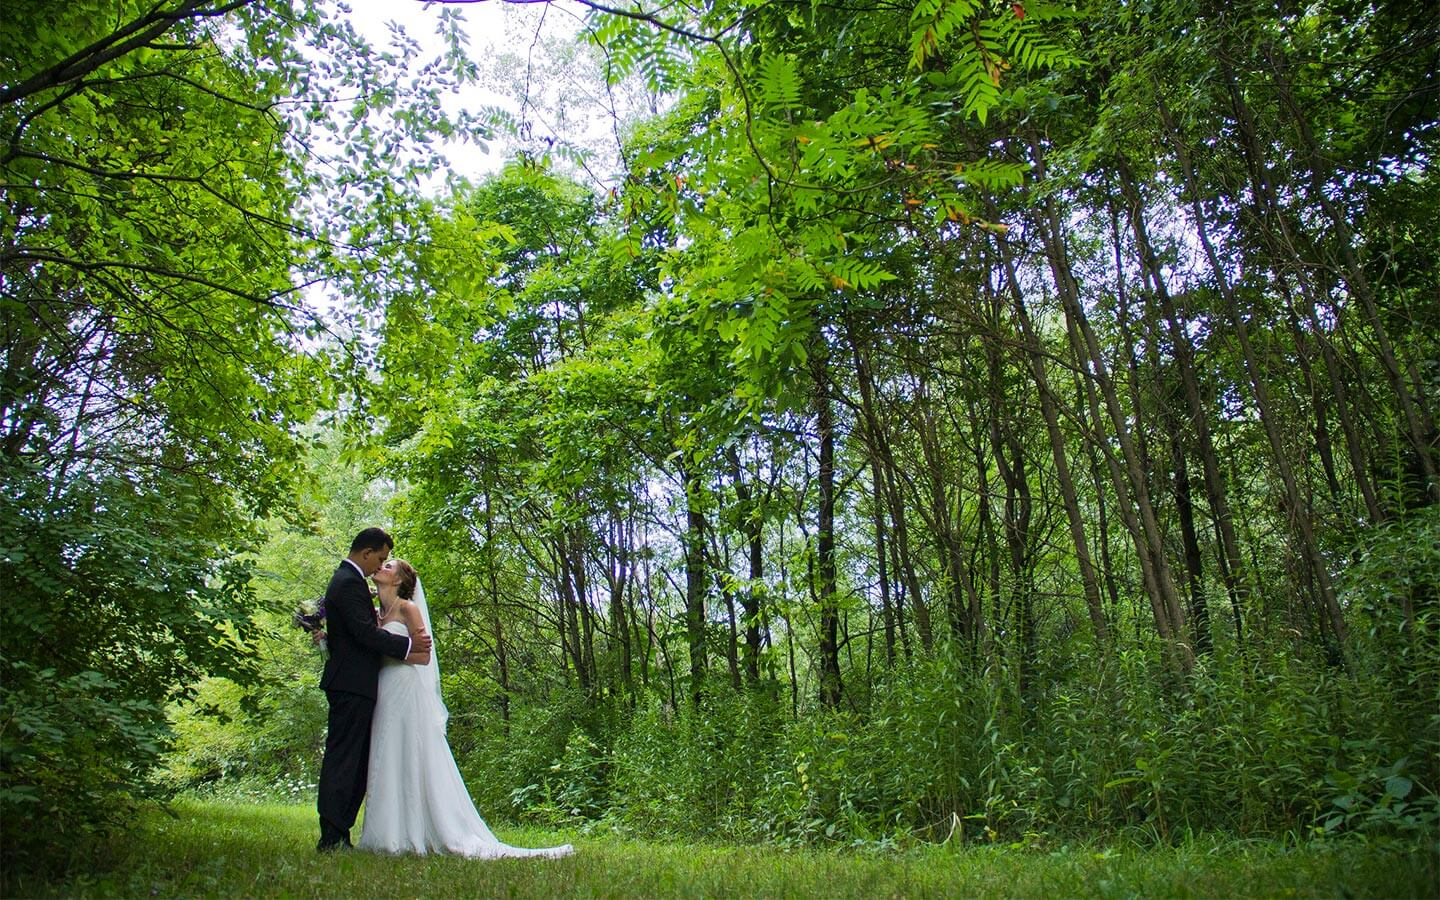 Michigan wedding in Summer, bride and groom in the meadow